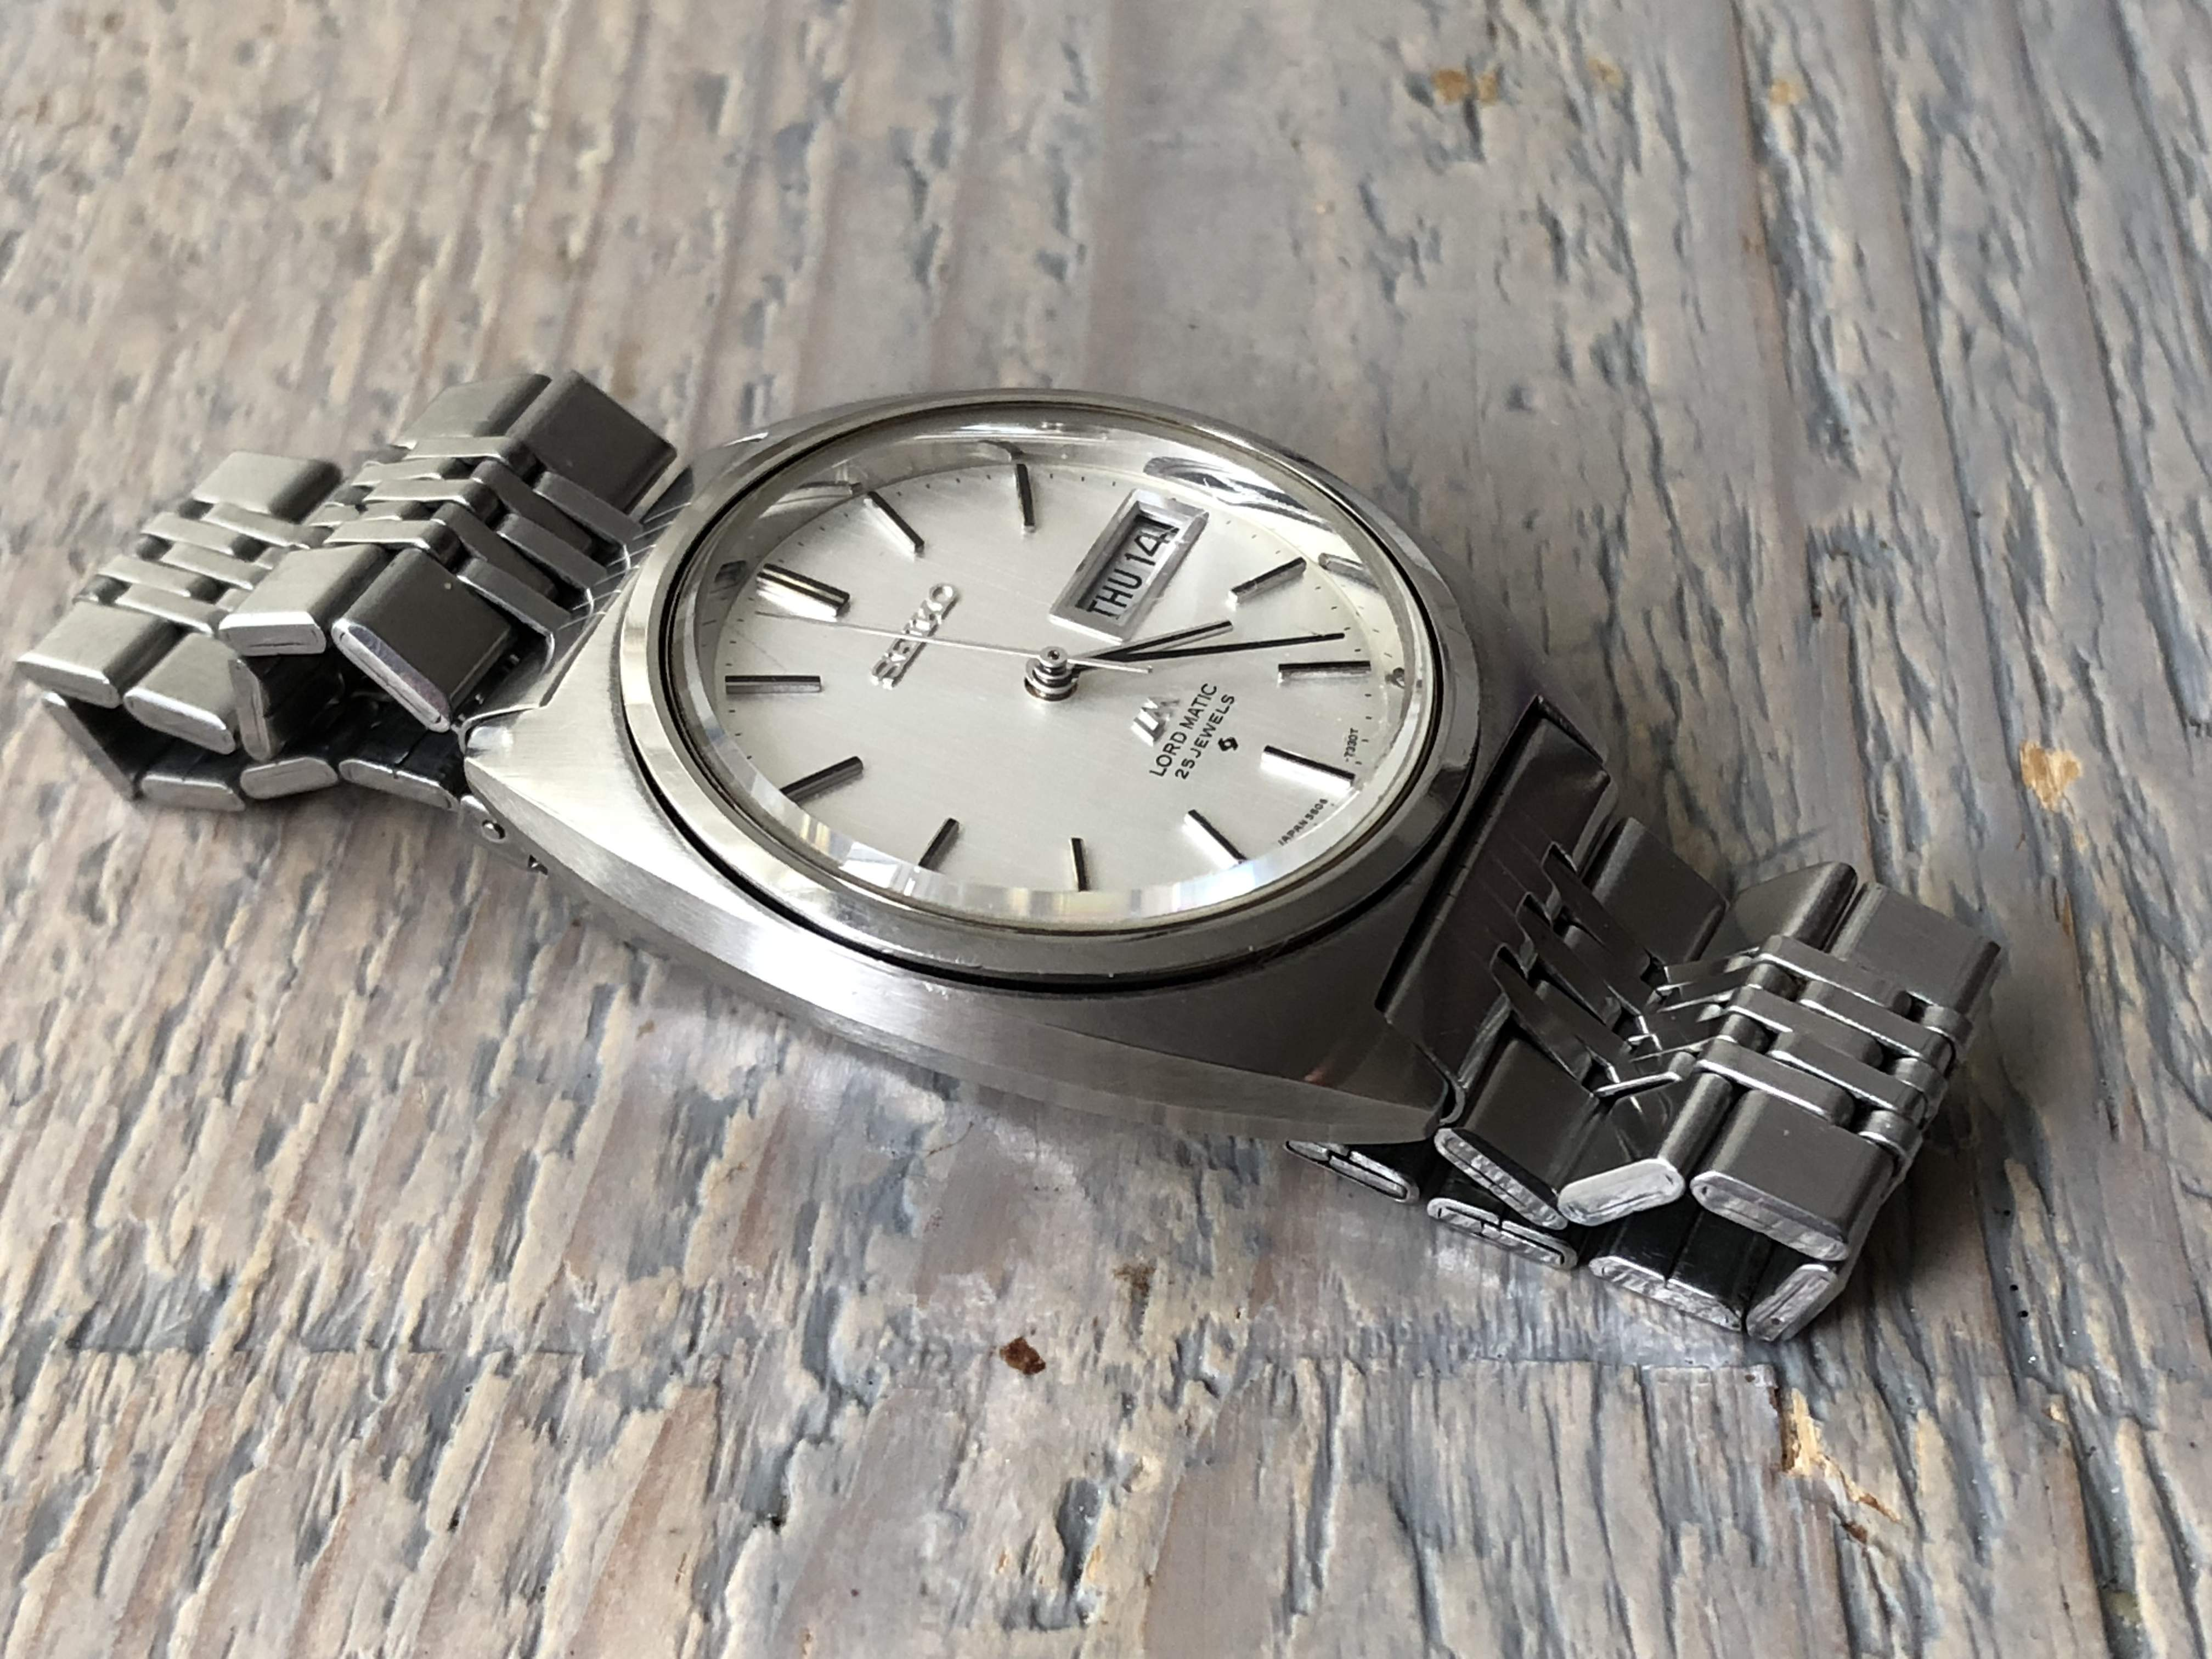 Seiko Lord-Matic 5606-7140 (Consignment/Sold)